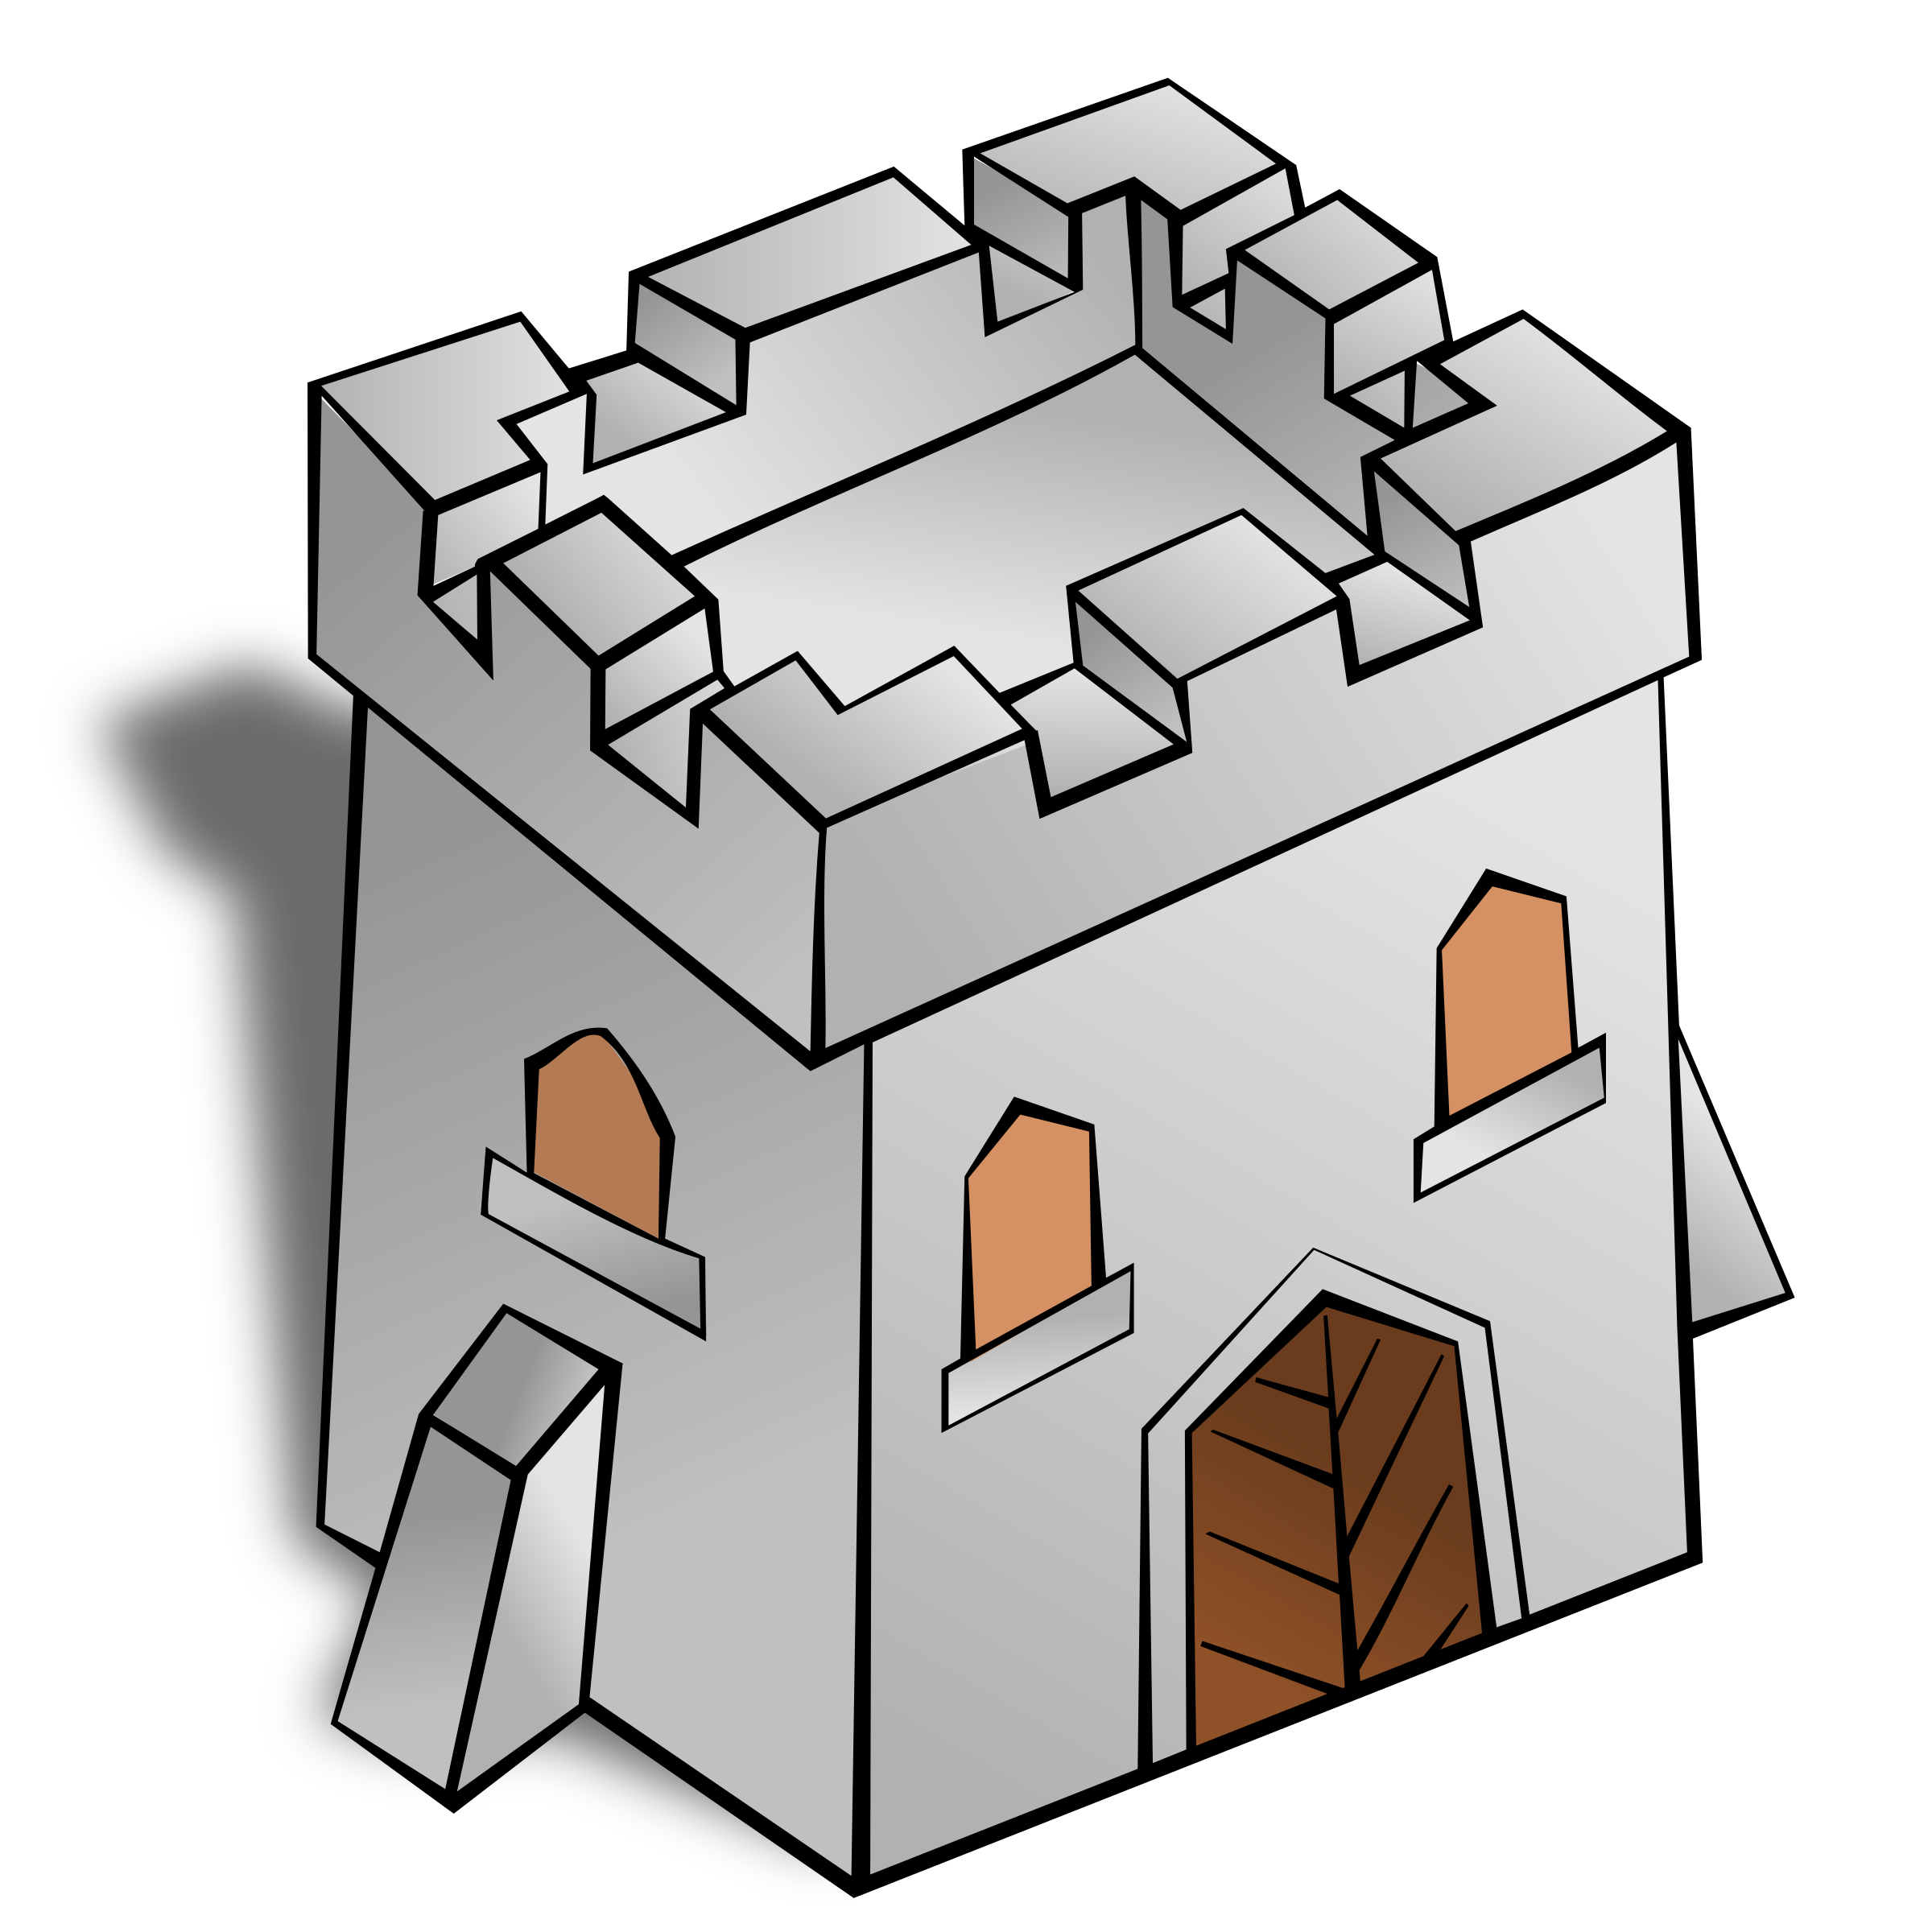 Rpg map symbols tower. Square clipart animated